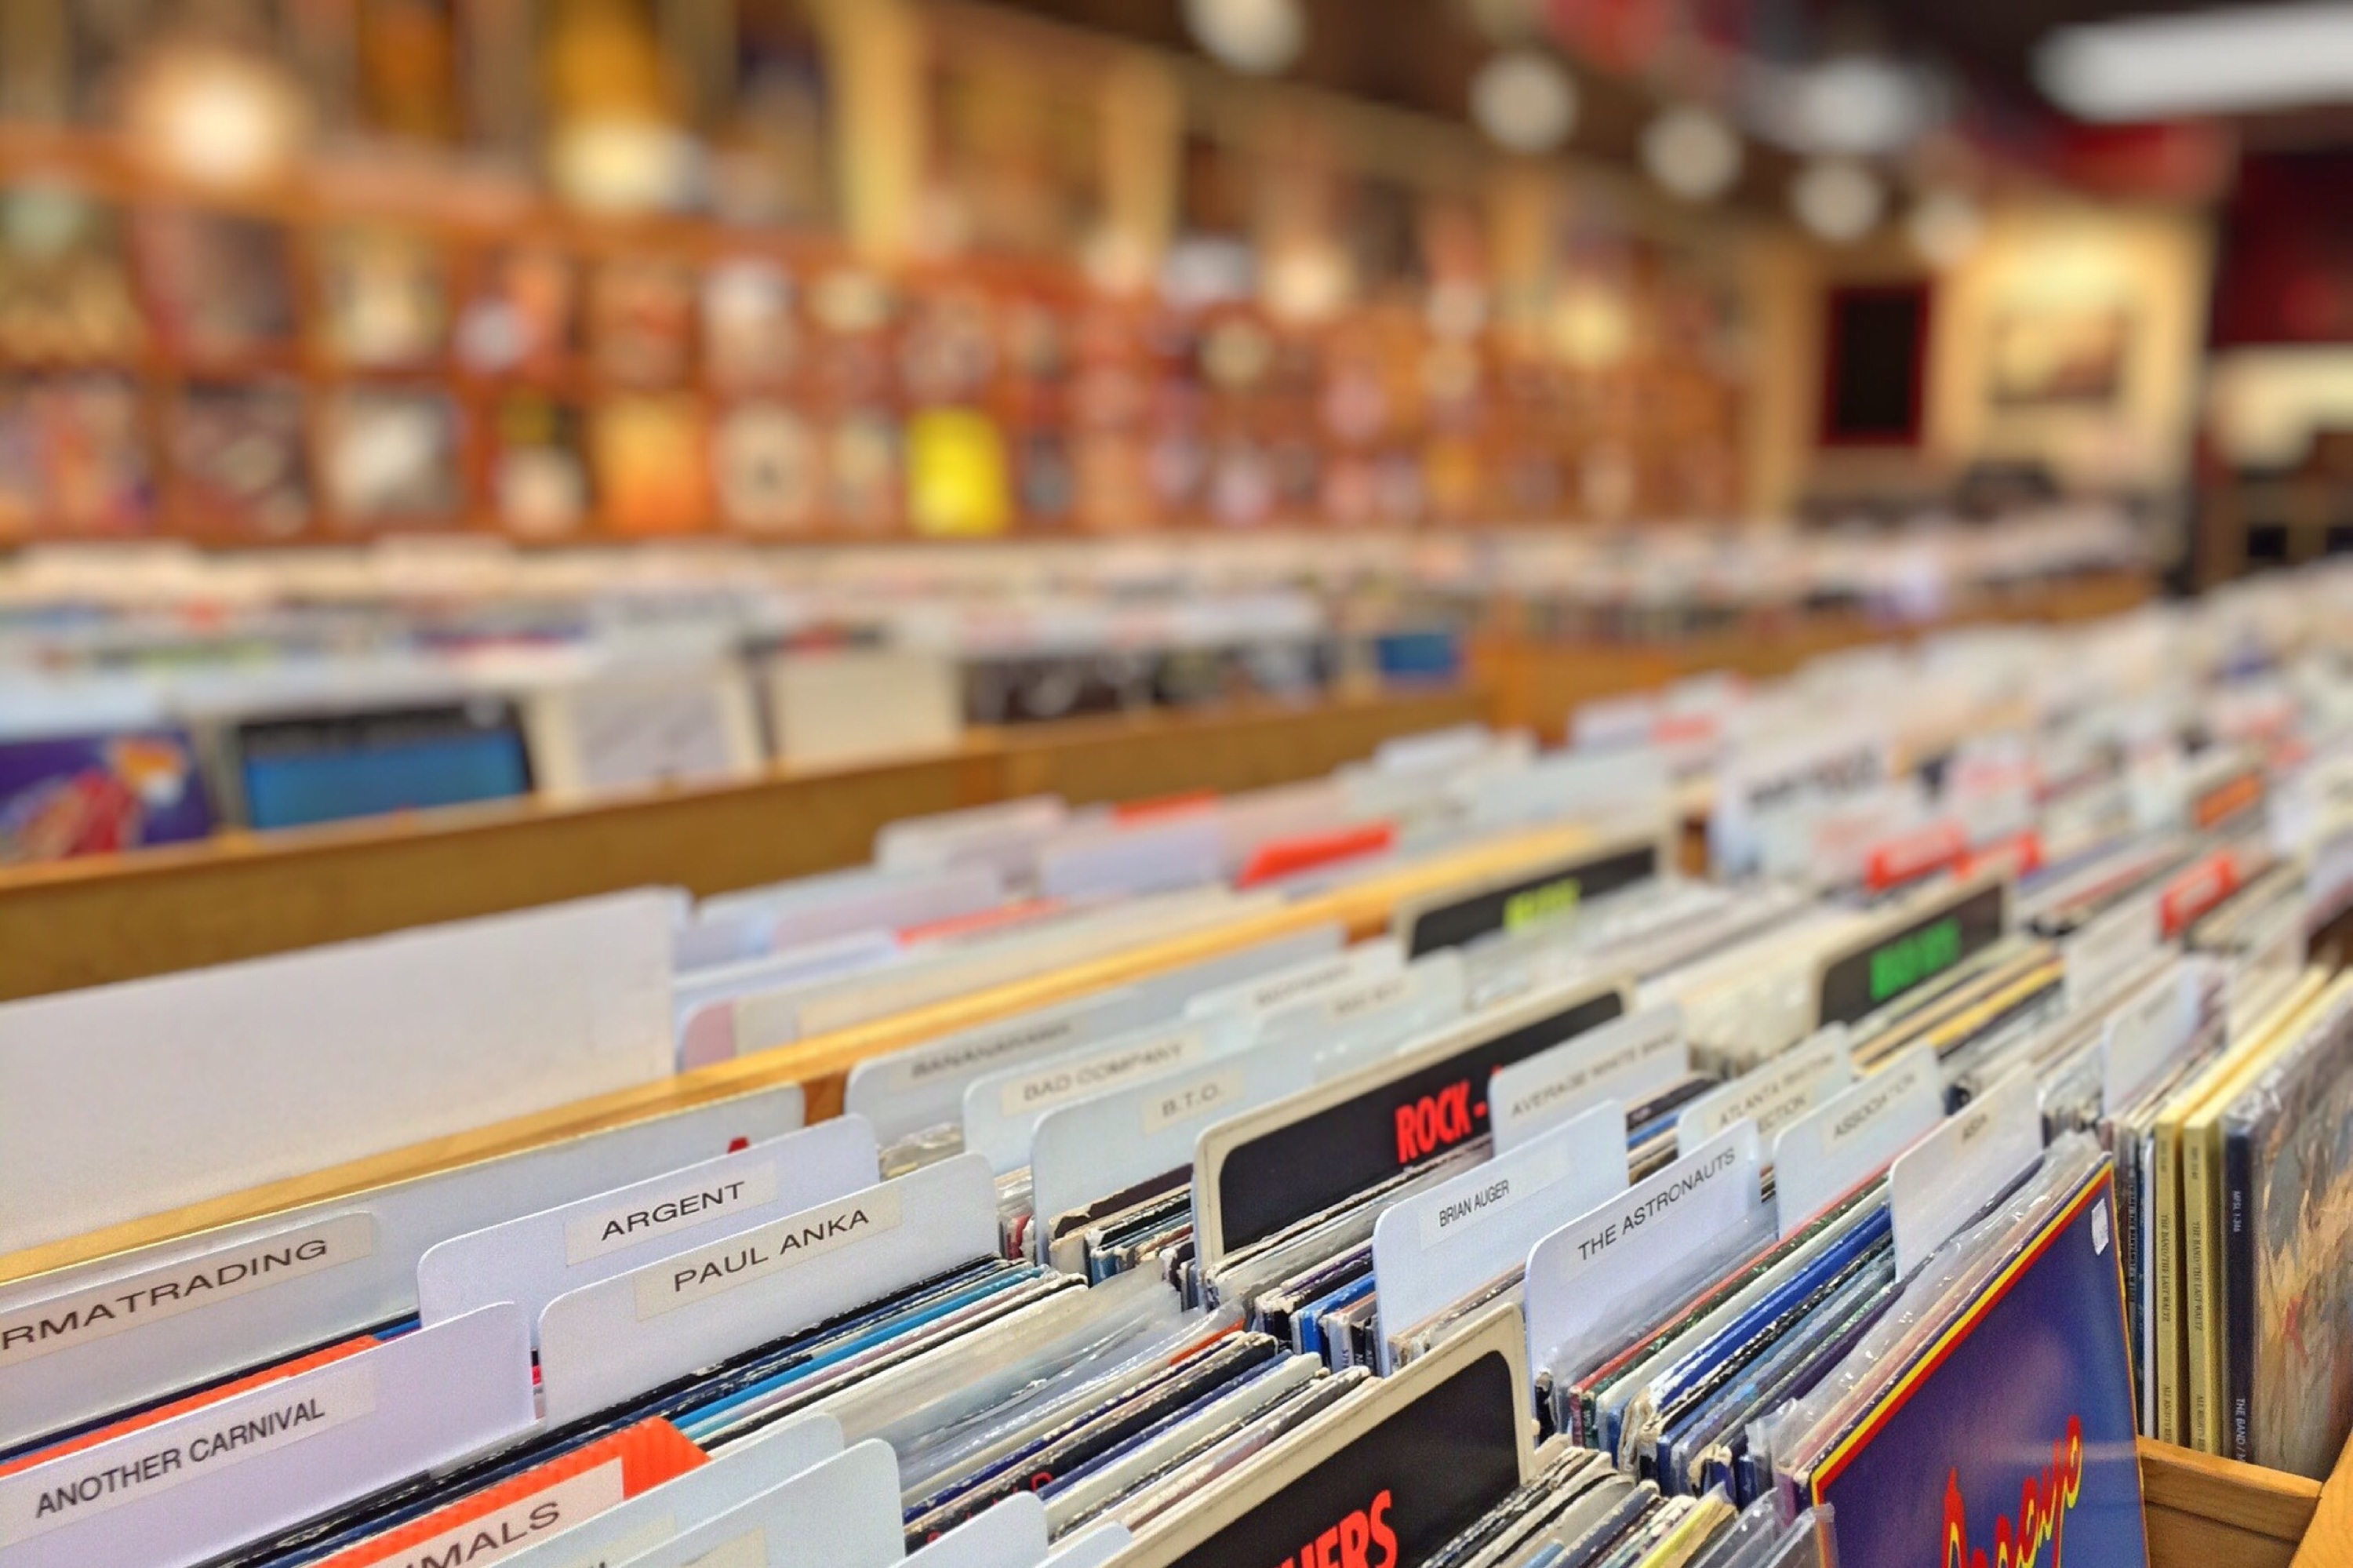 The best record stores in Melbourne